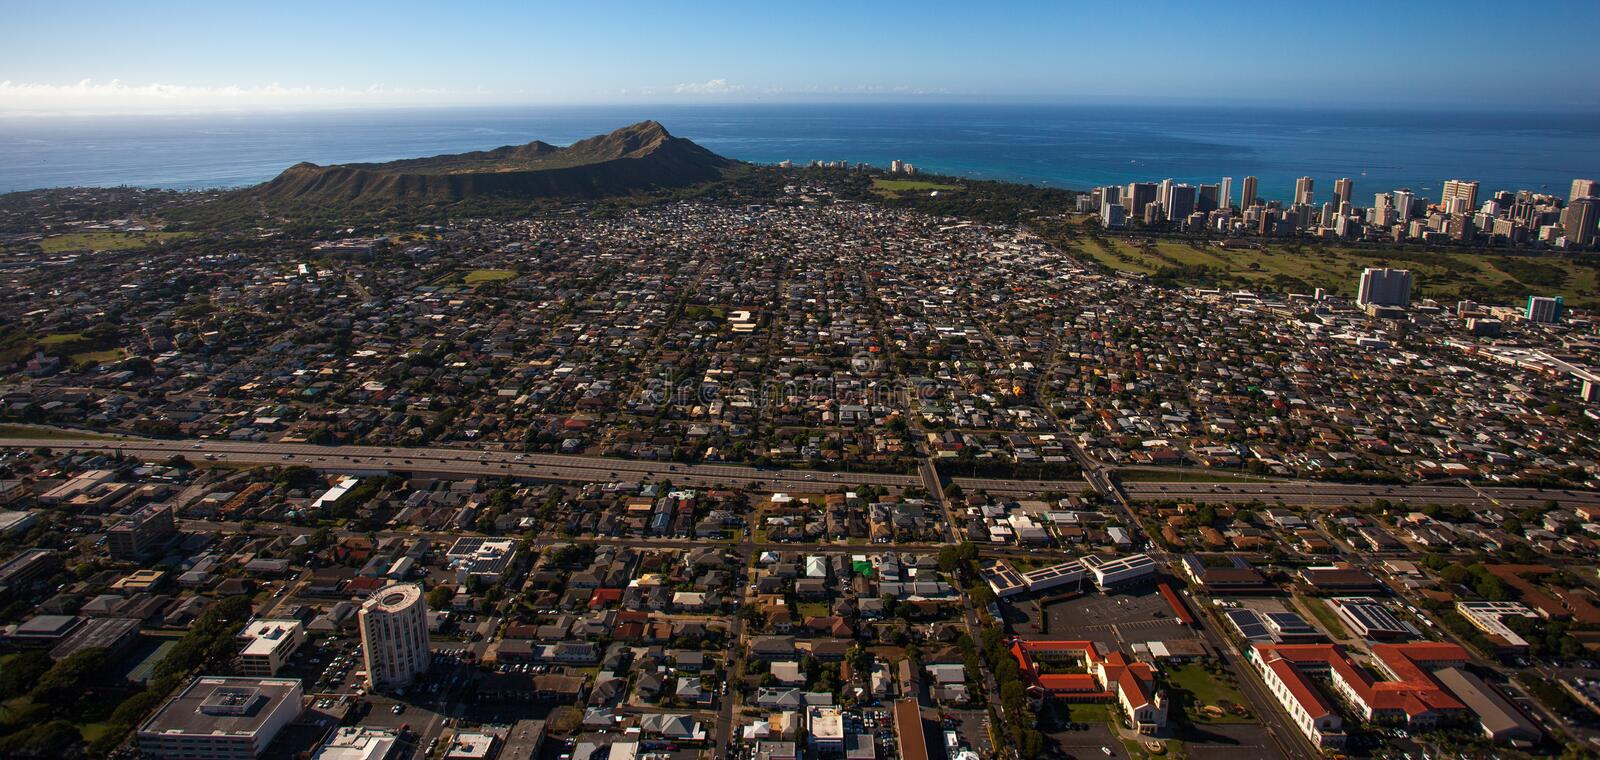 Downtown Honolulu and Diamond Head Crater Aerial View stock image